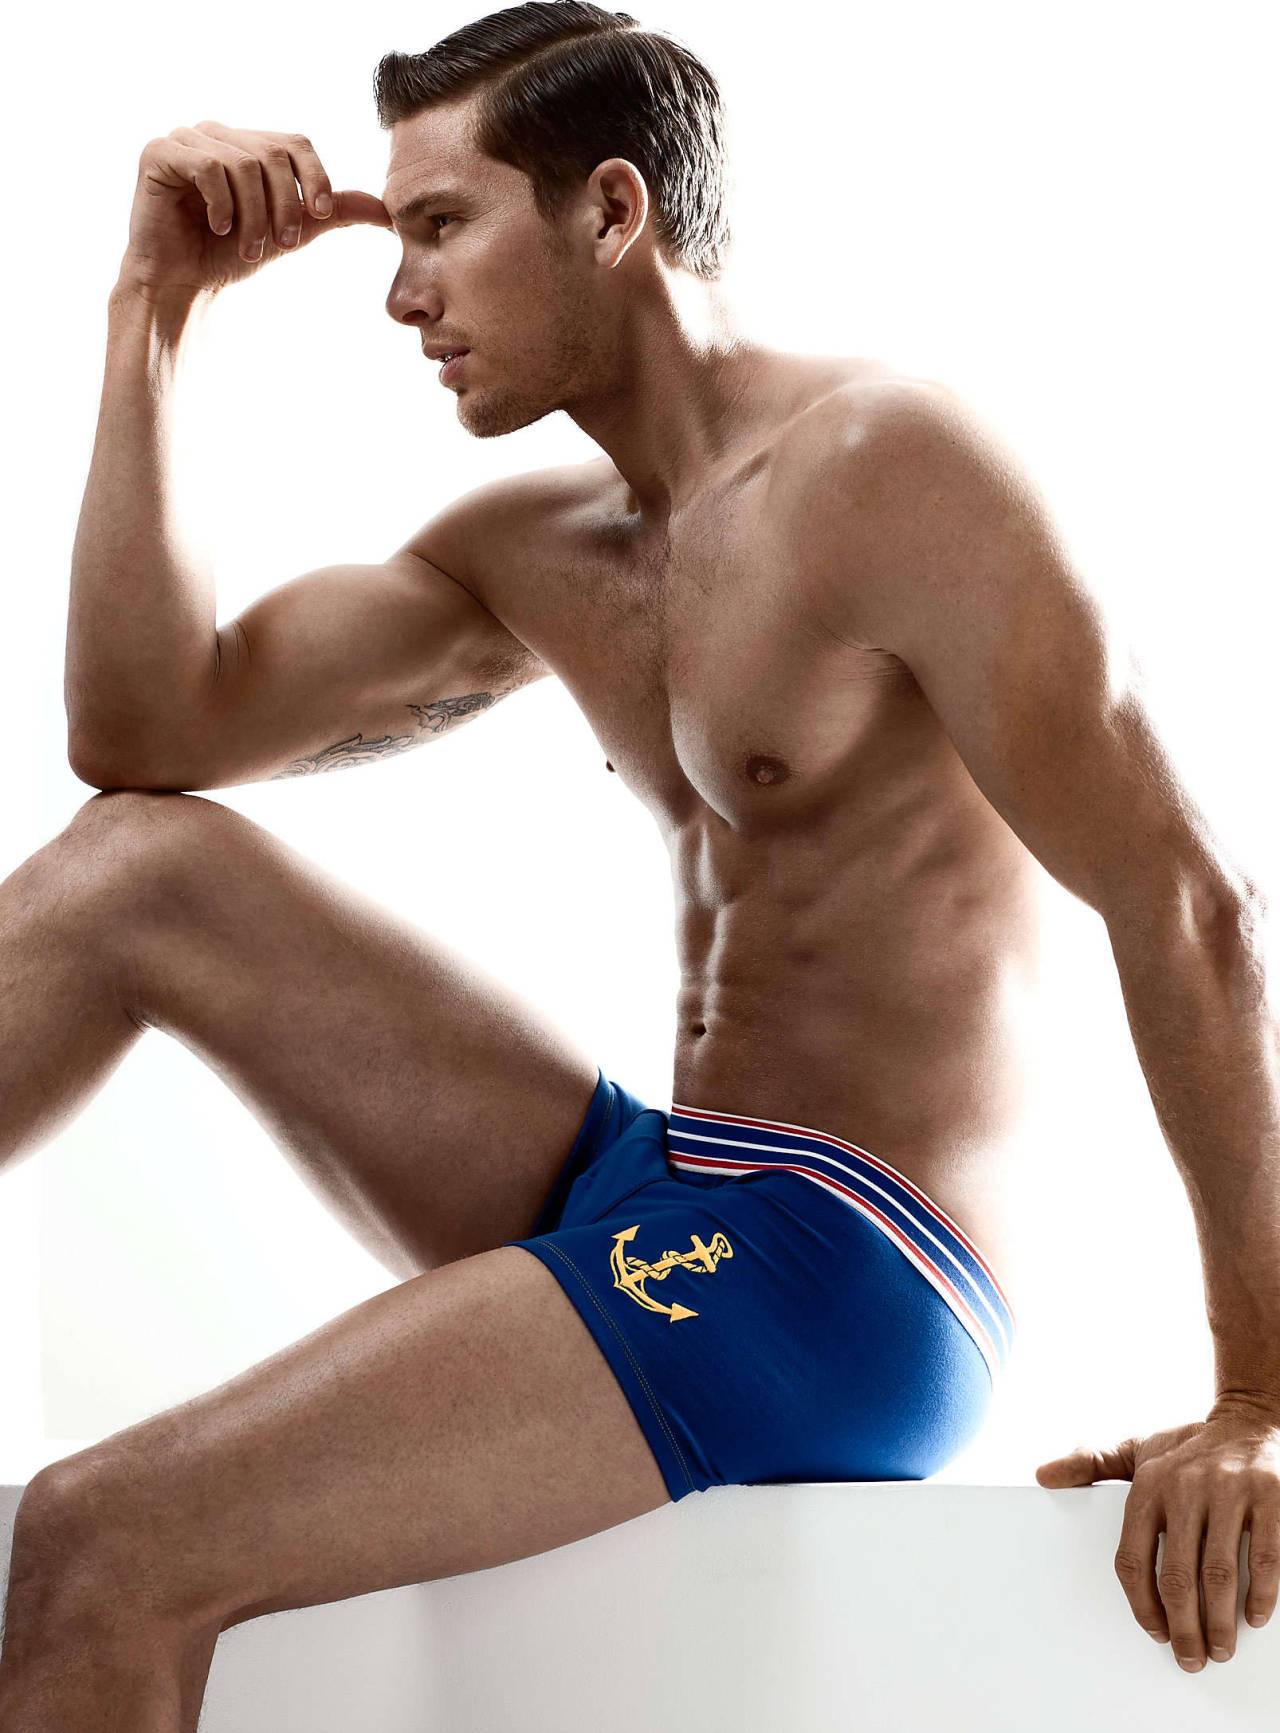 Adam Senn for Simons Underwear